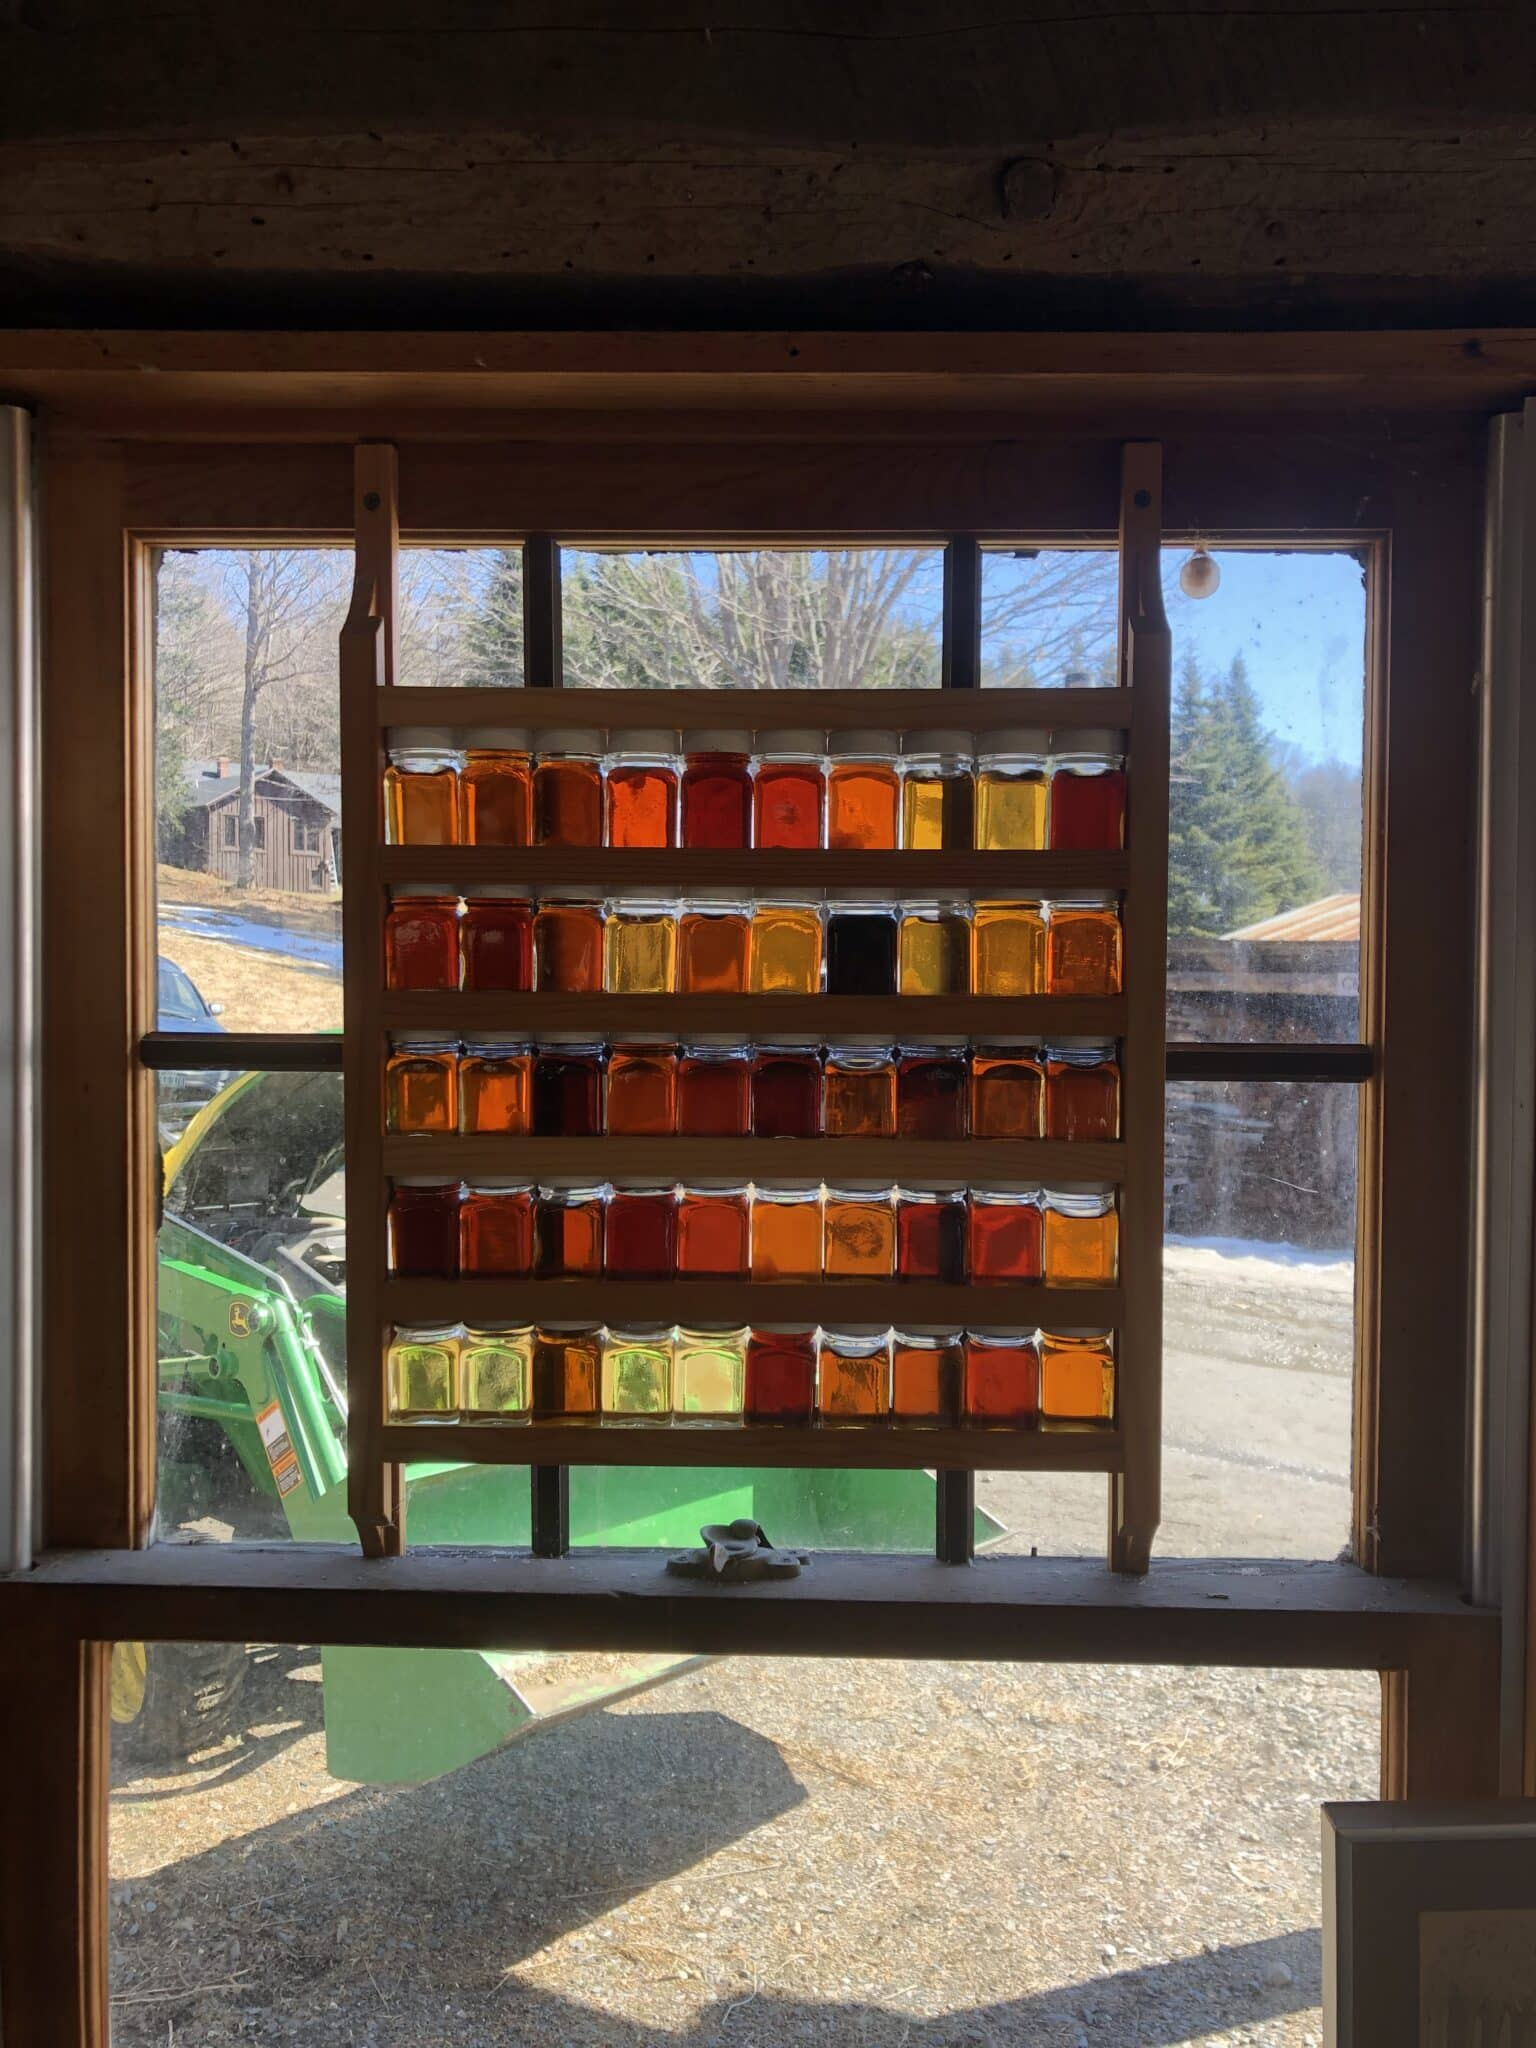 maple syrup framed in window